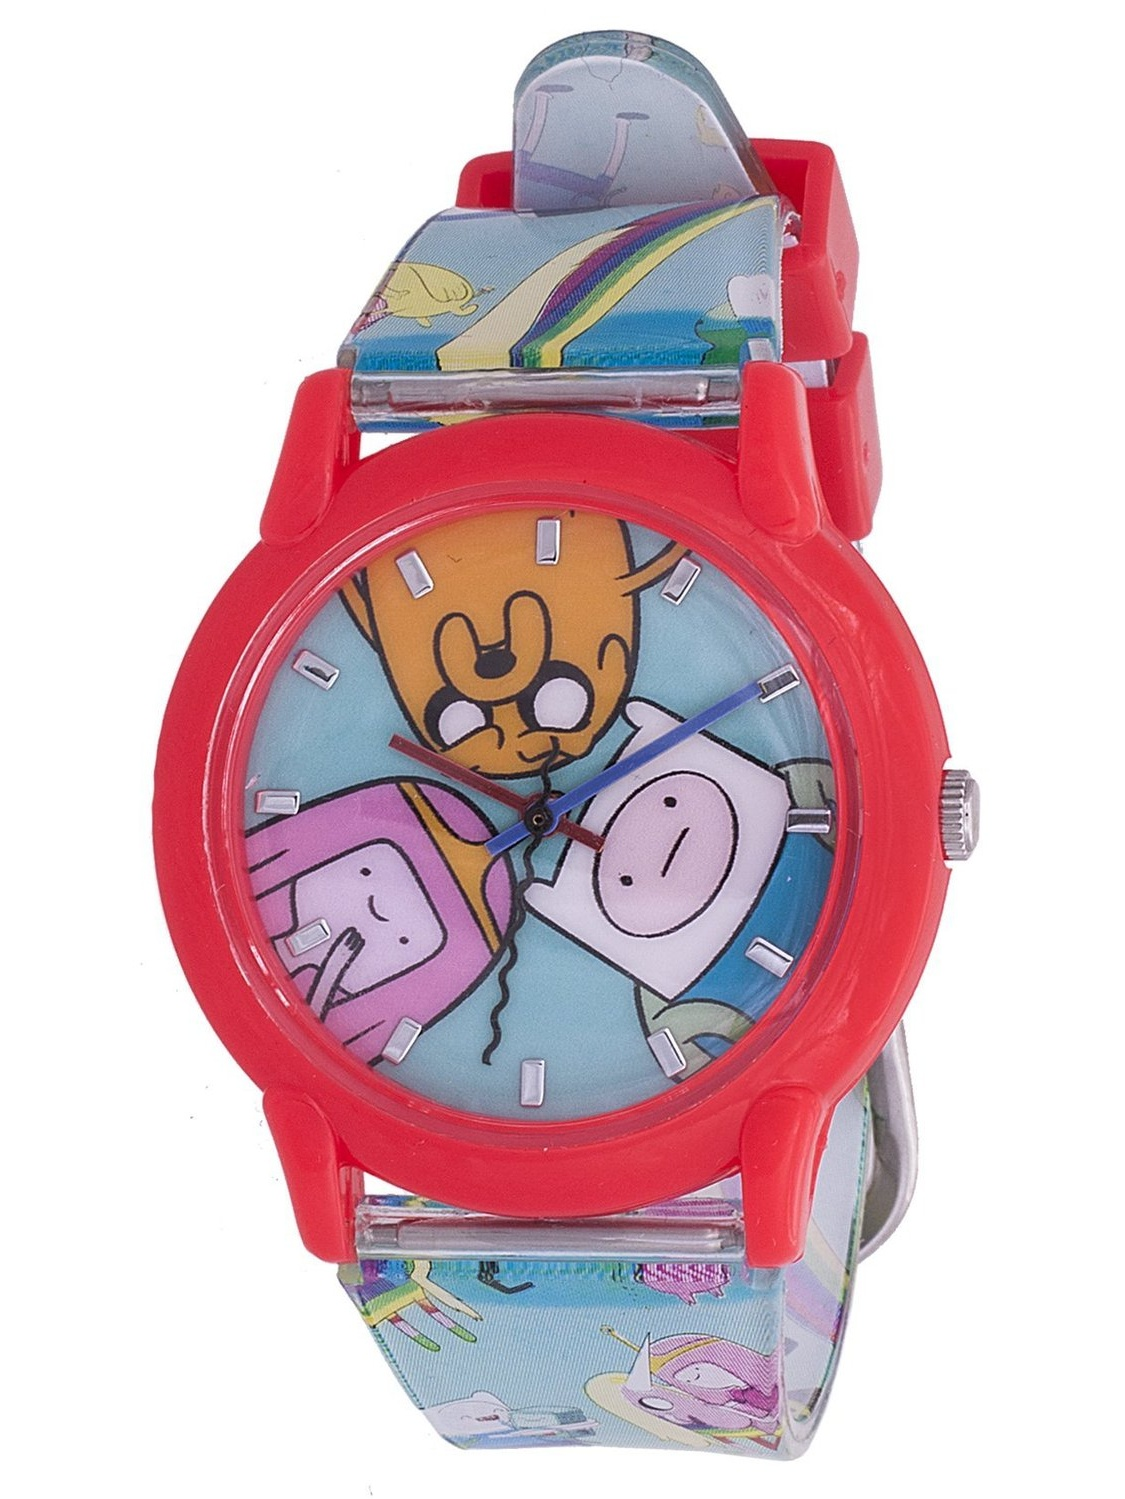 Adjustable Watch Limited Edition Same Watch worn Deadpool in both Movies